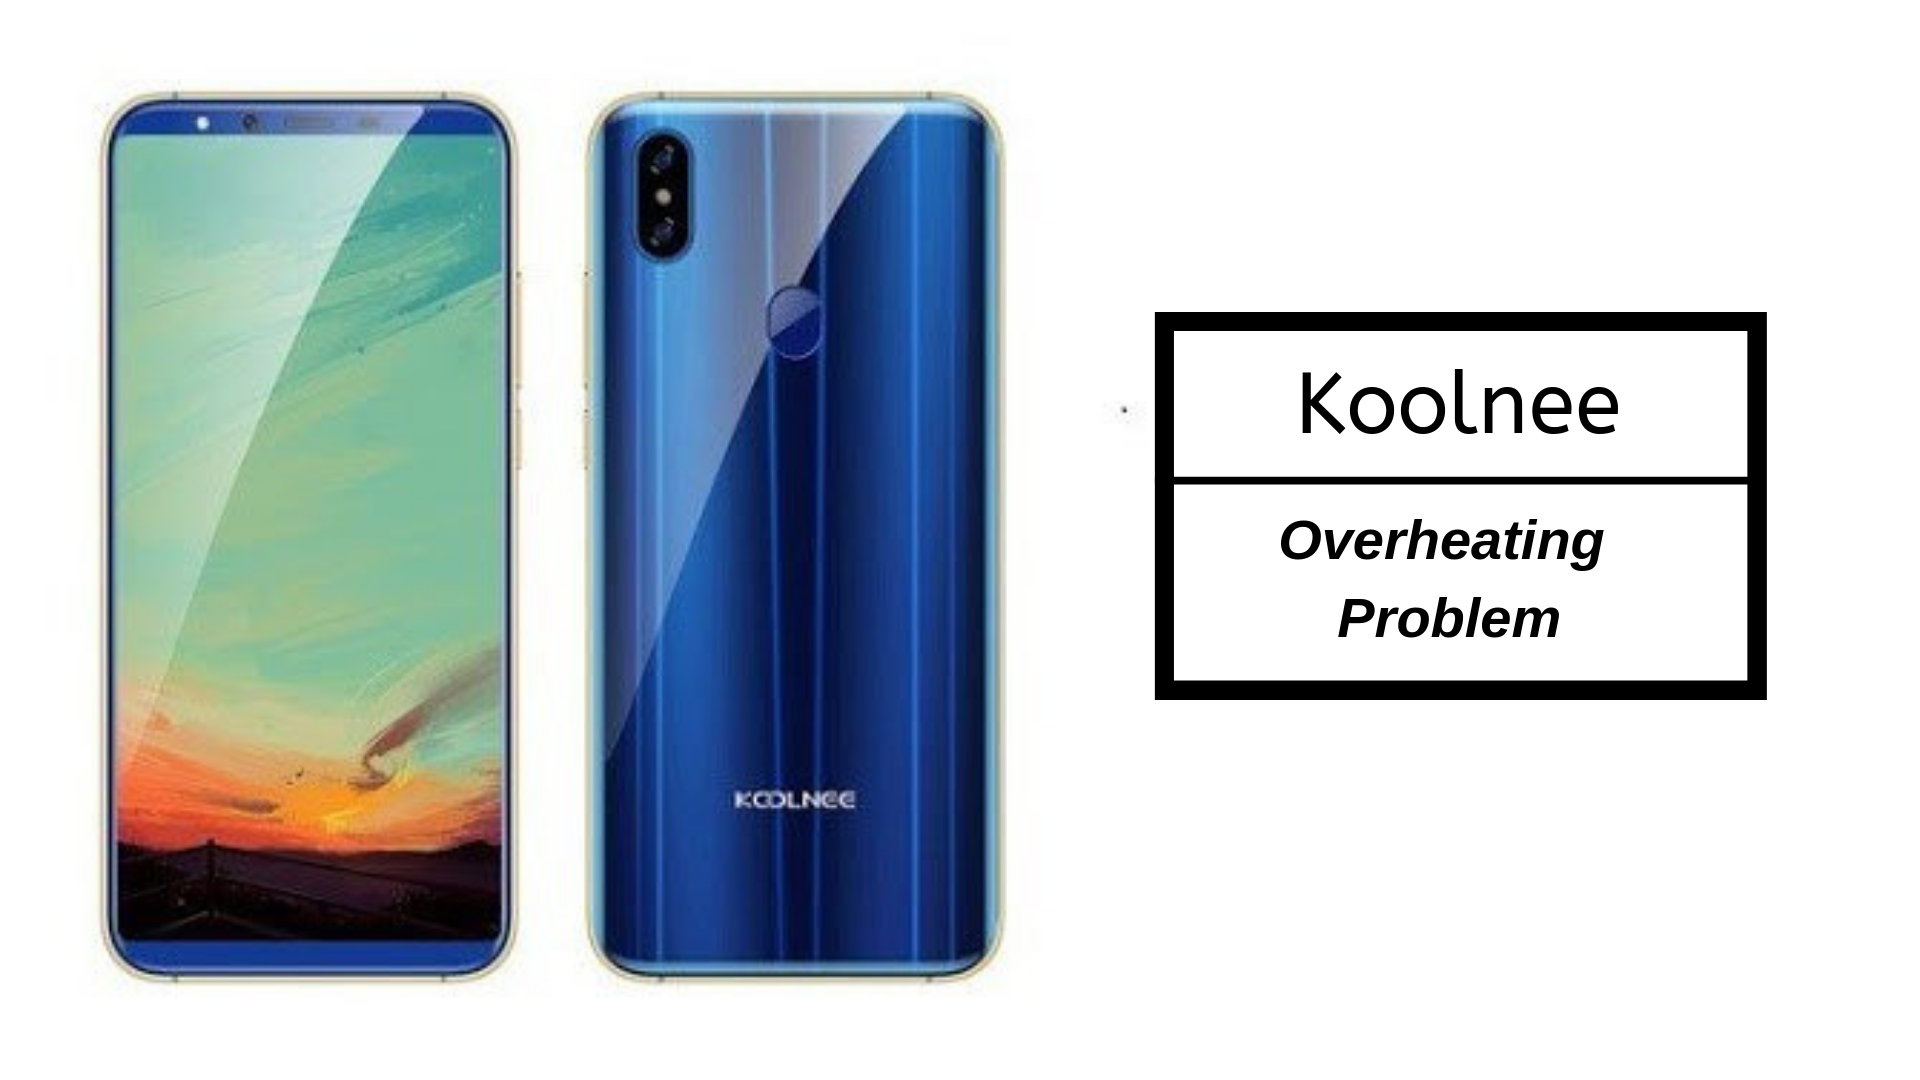 How To Fix Koolnee Overheating Problem - Troubleshooting Fix & Tips